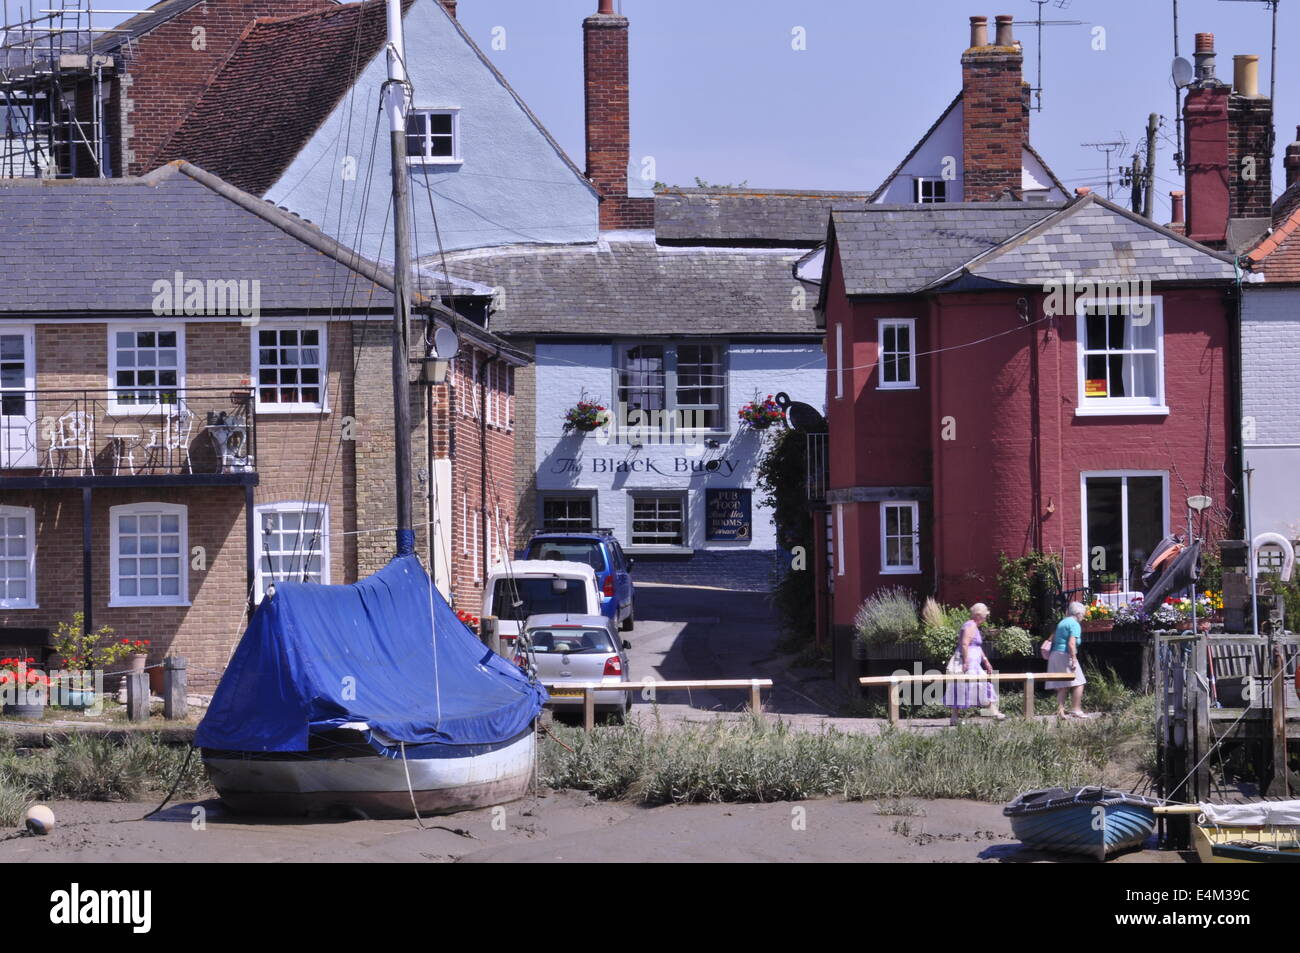 Wivenhoe on the River Colne Essex - Stock Image